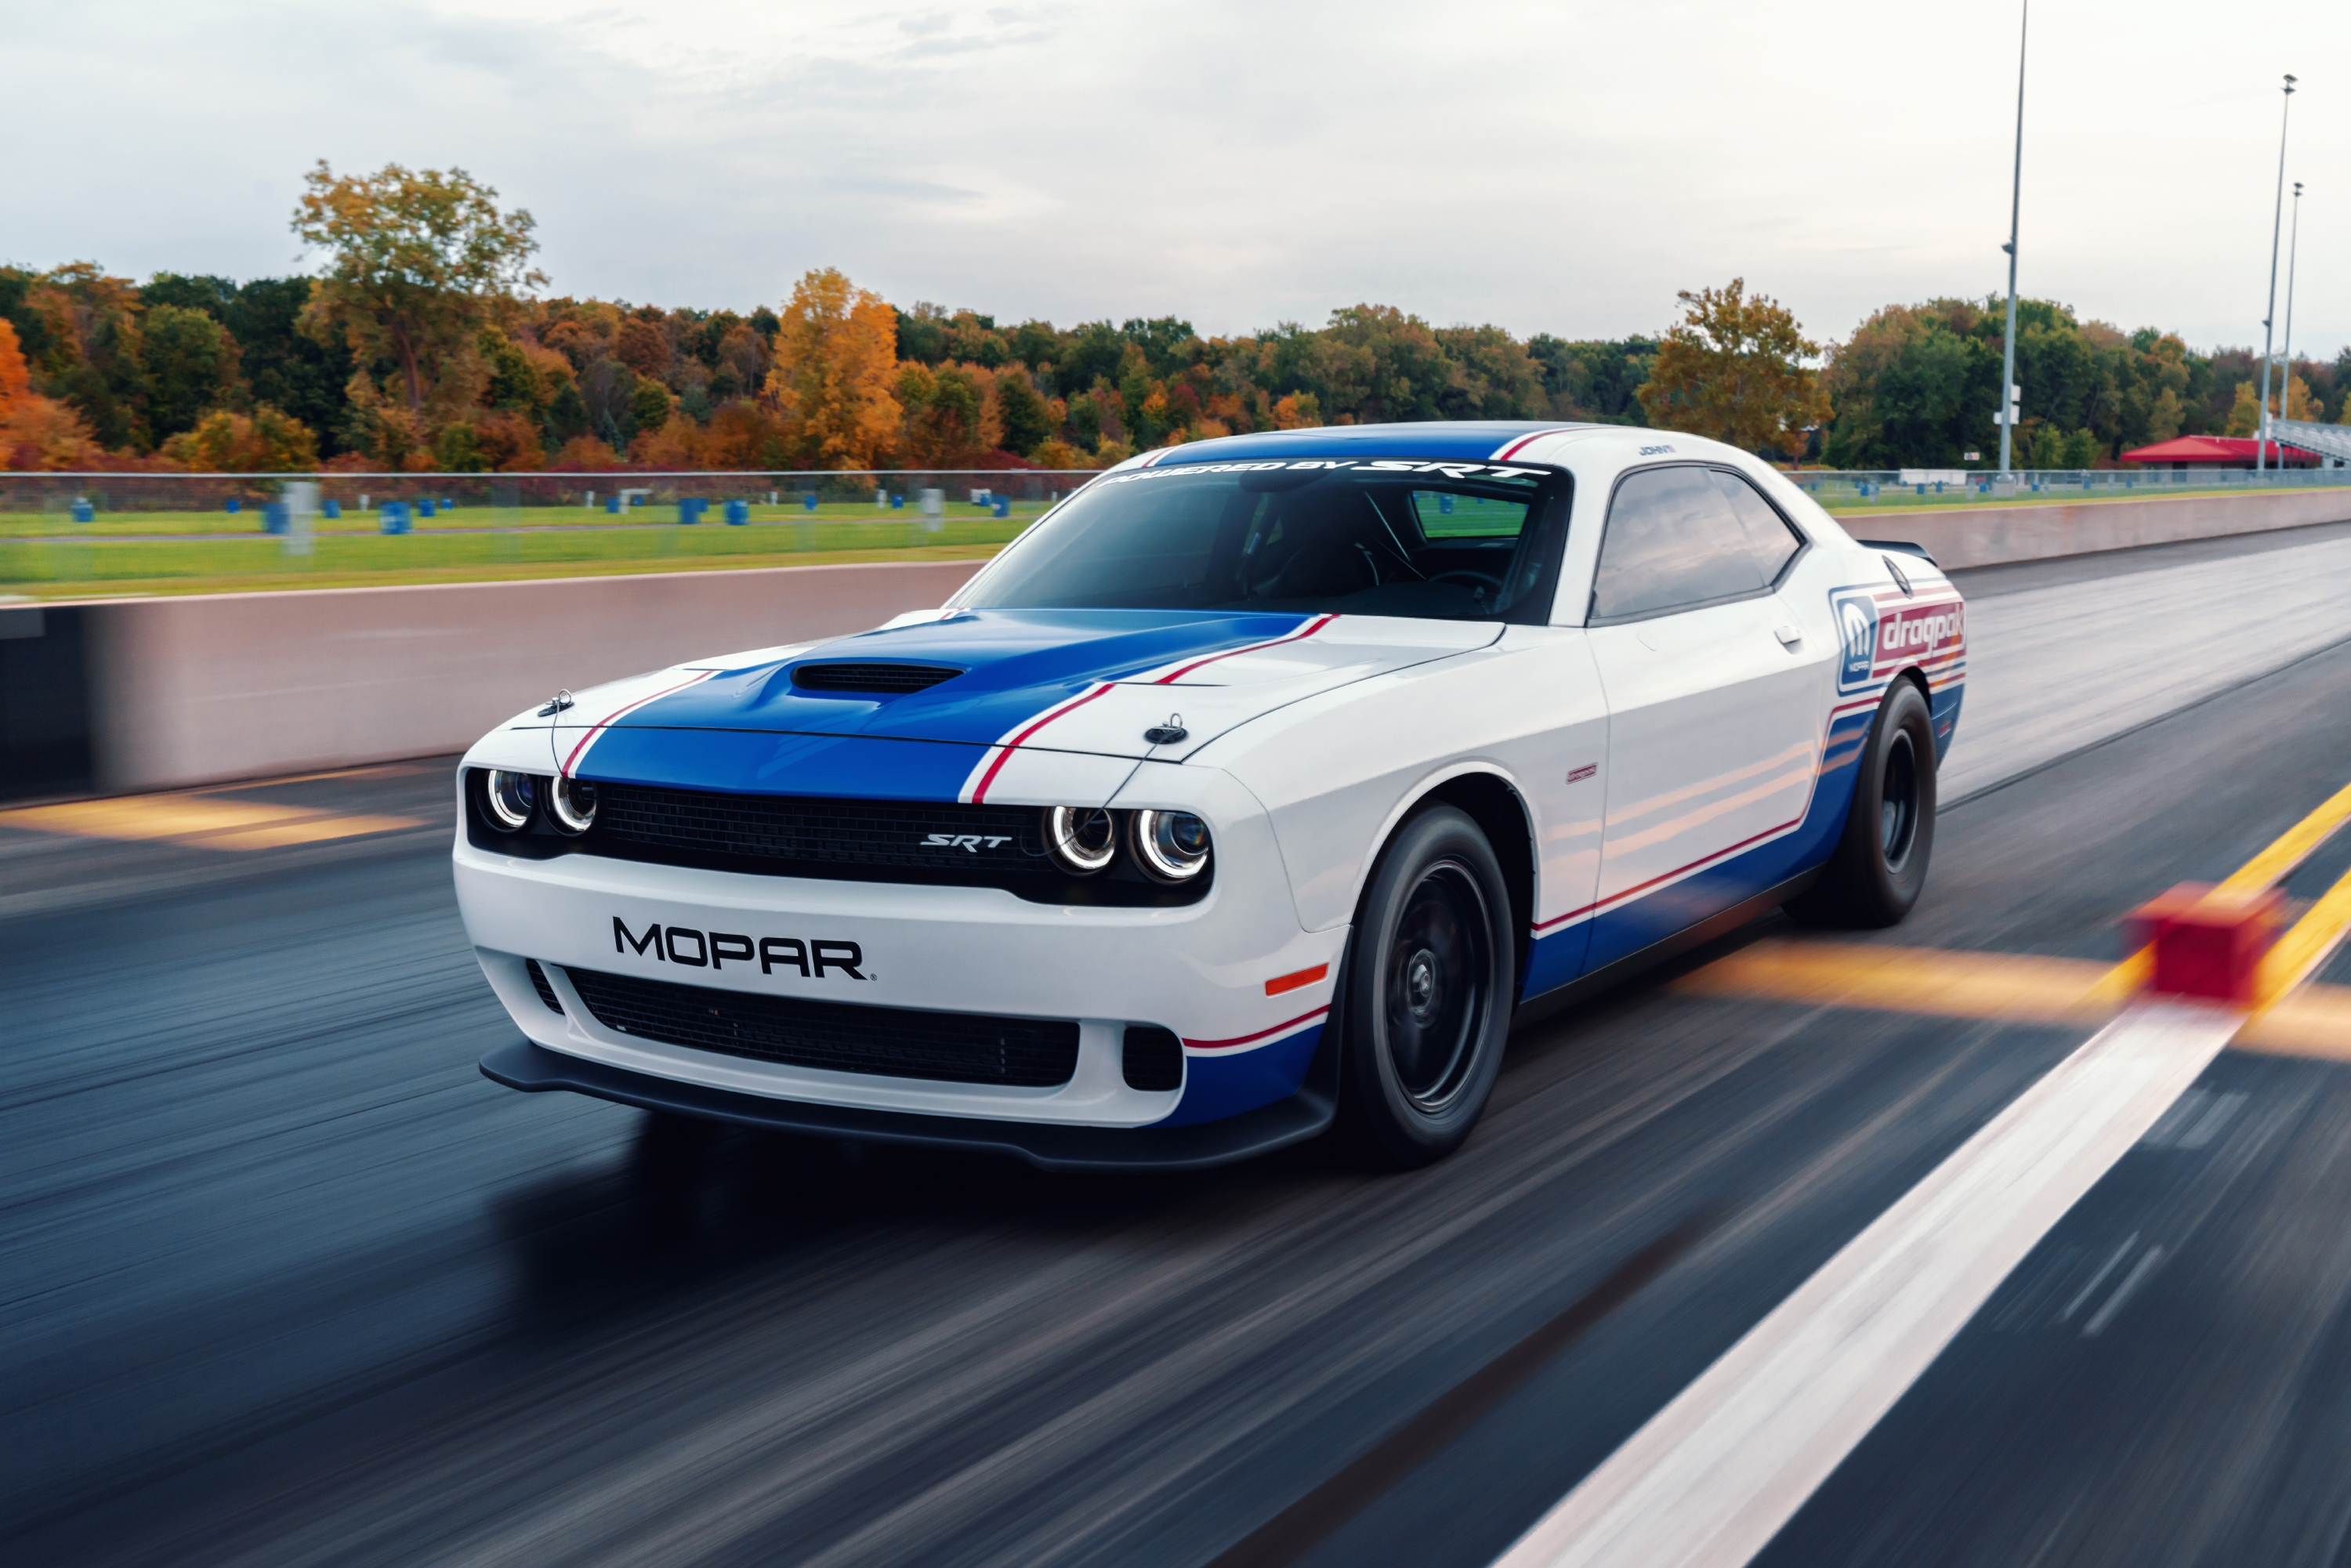 2020 Dodge Challenger Drag Pak By Mopar And Srt